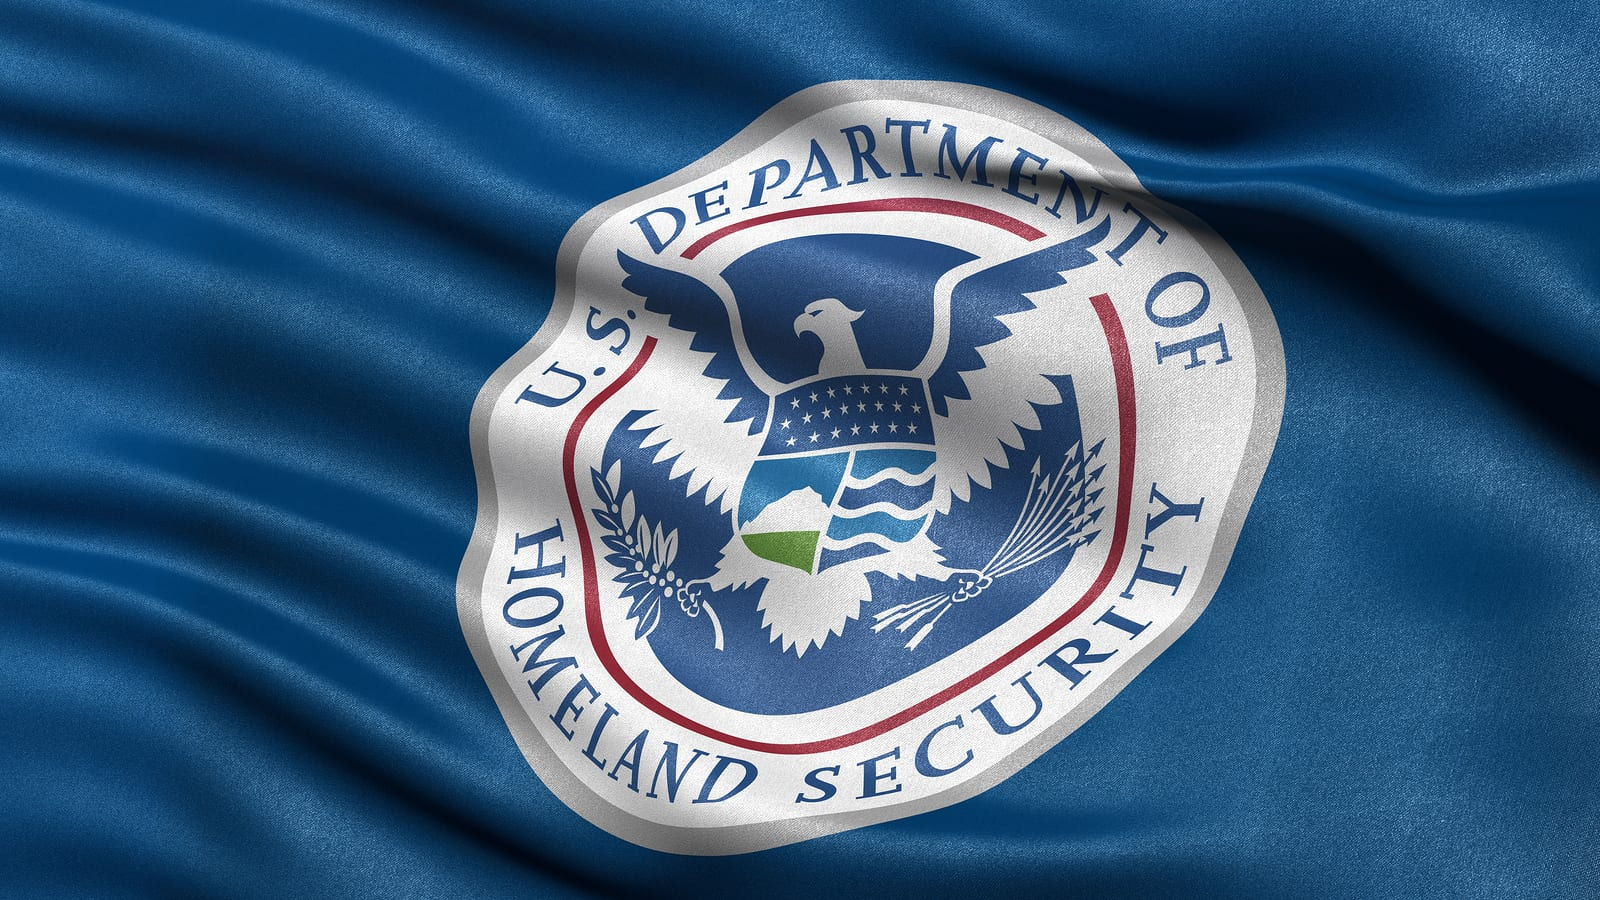 Homeland Security News: Joint Statement between the U.S. Government, Government of Guatemala